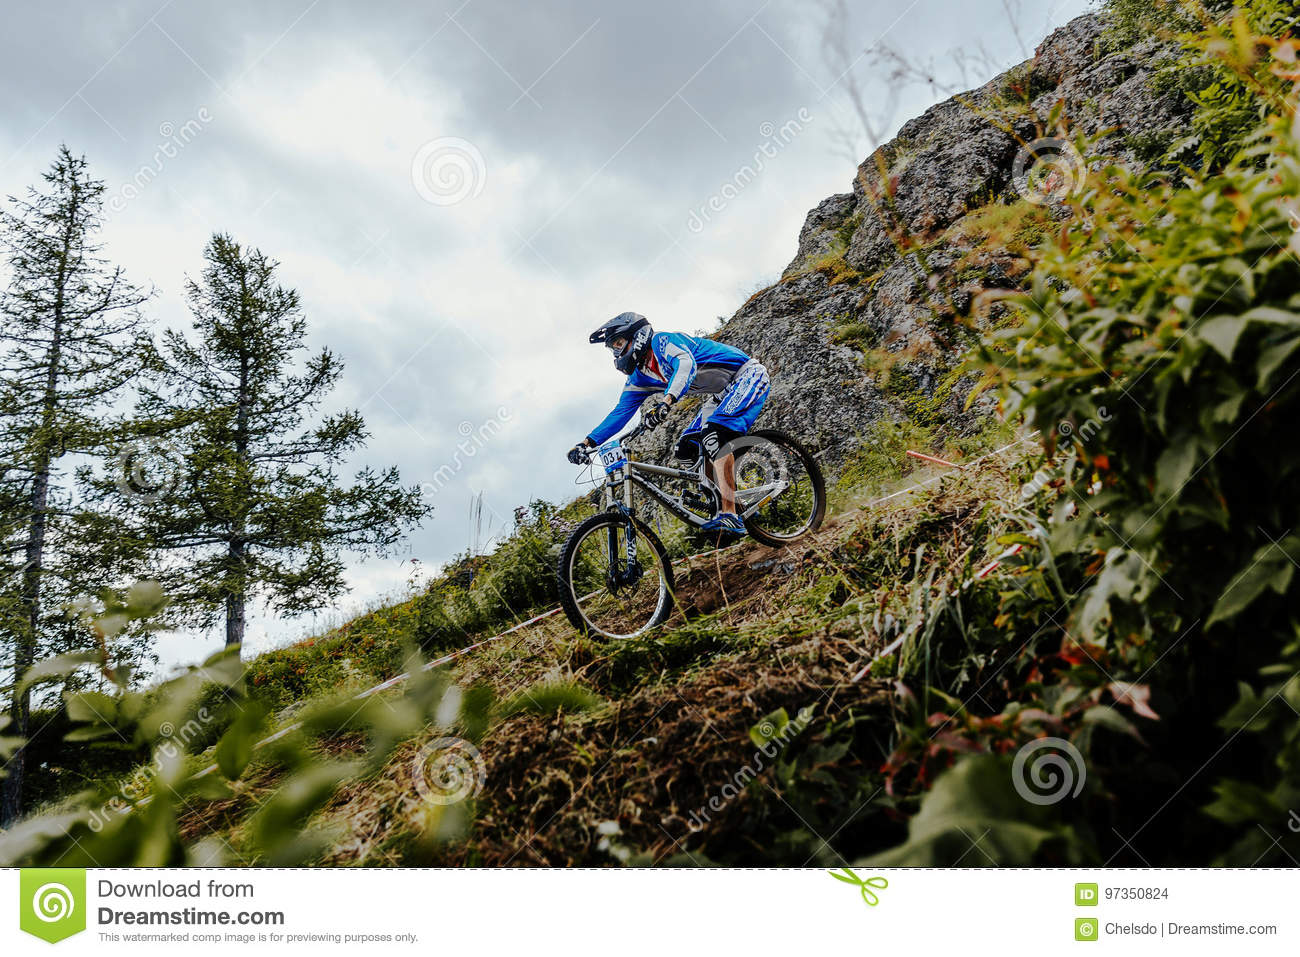 Rider on bike downhill mountain and forest track